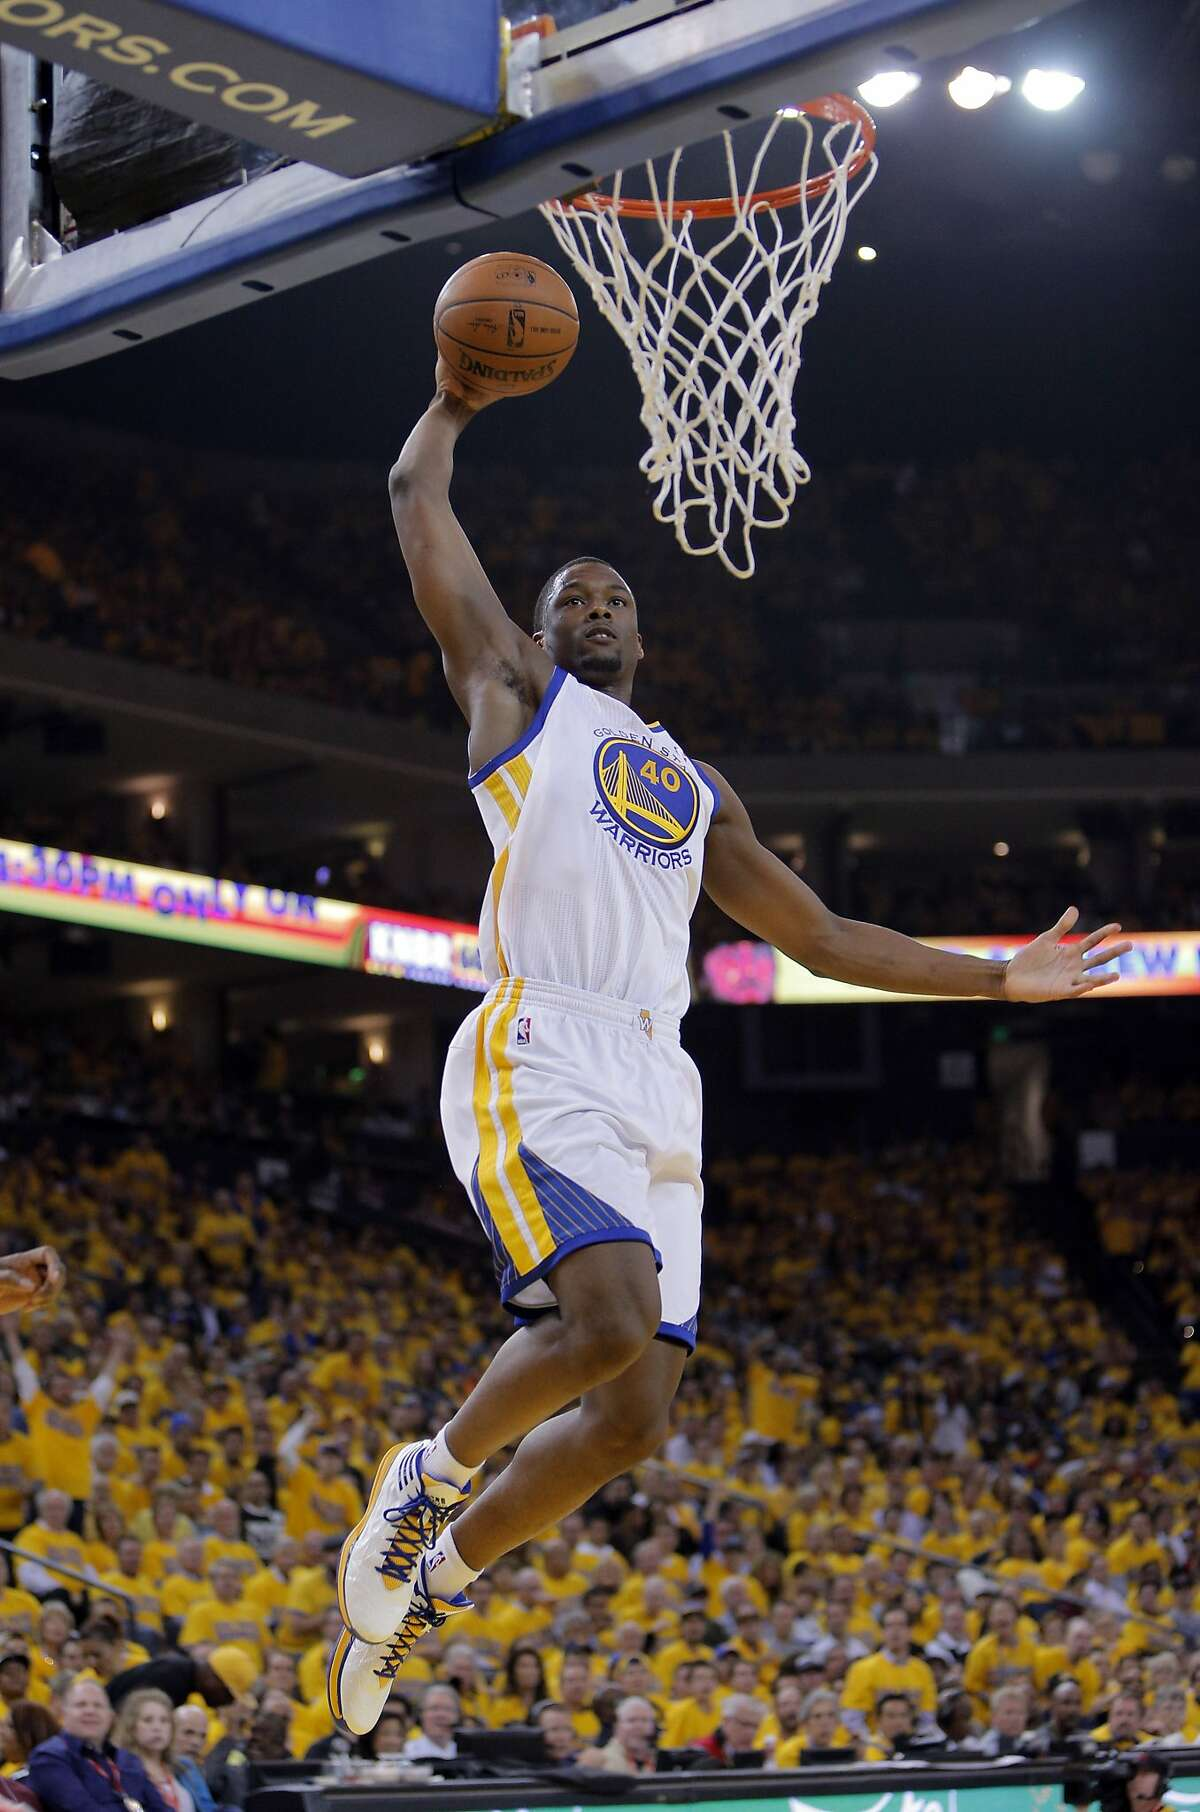 Harrison Barnes (40) dunks the ball in the first half. The Golden State Warriors played the Los Angeles Clippers at Oracle Arena in Oakland, Calif., on Thursday, April 24, 2014, in Game 3 of the first-round playoff series.